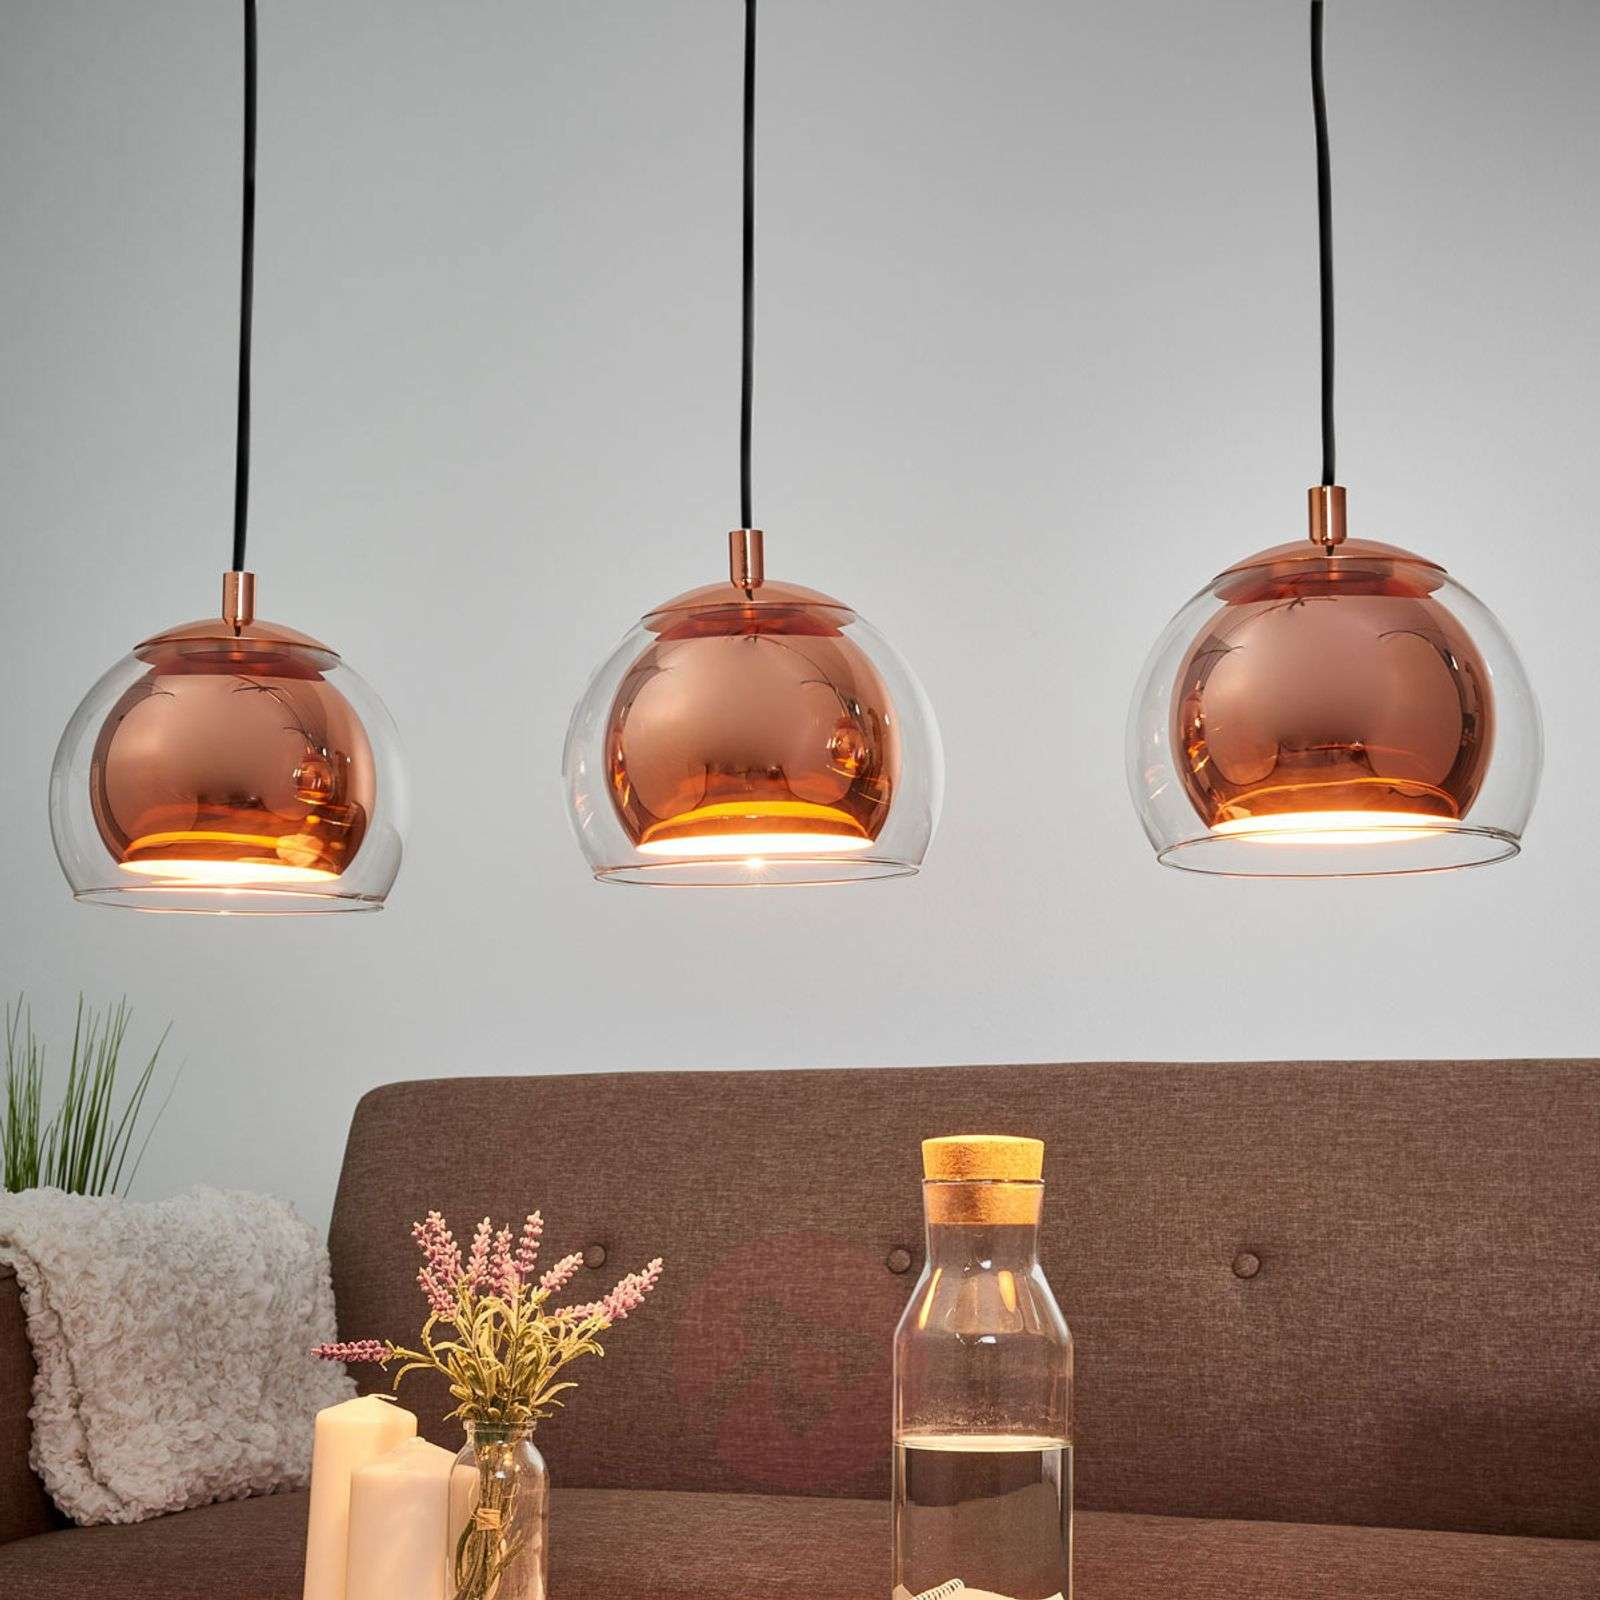 Rocamar a three-bulb pendant light-3031751-01